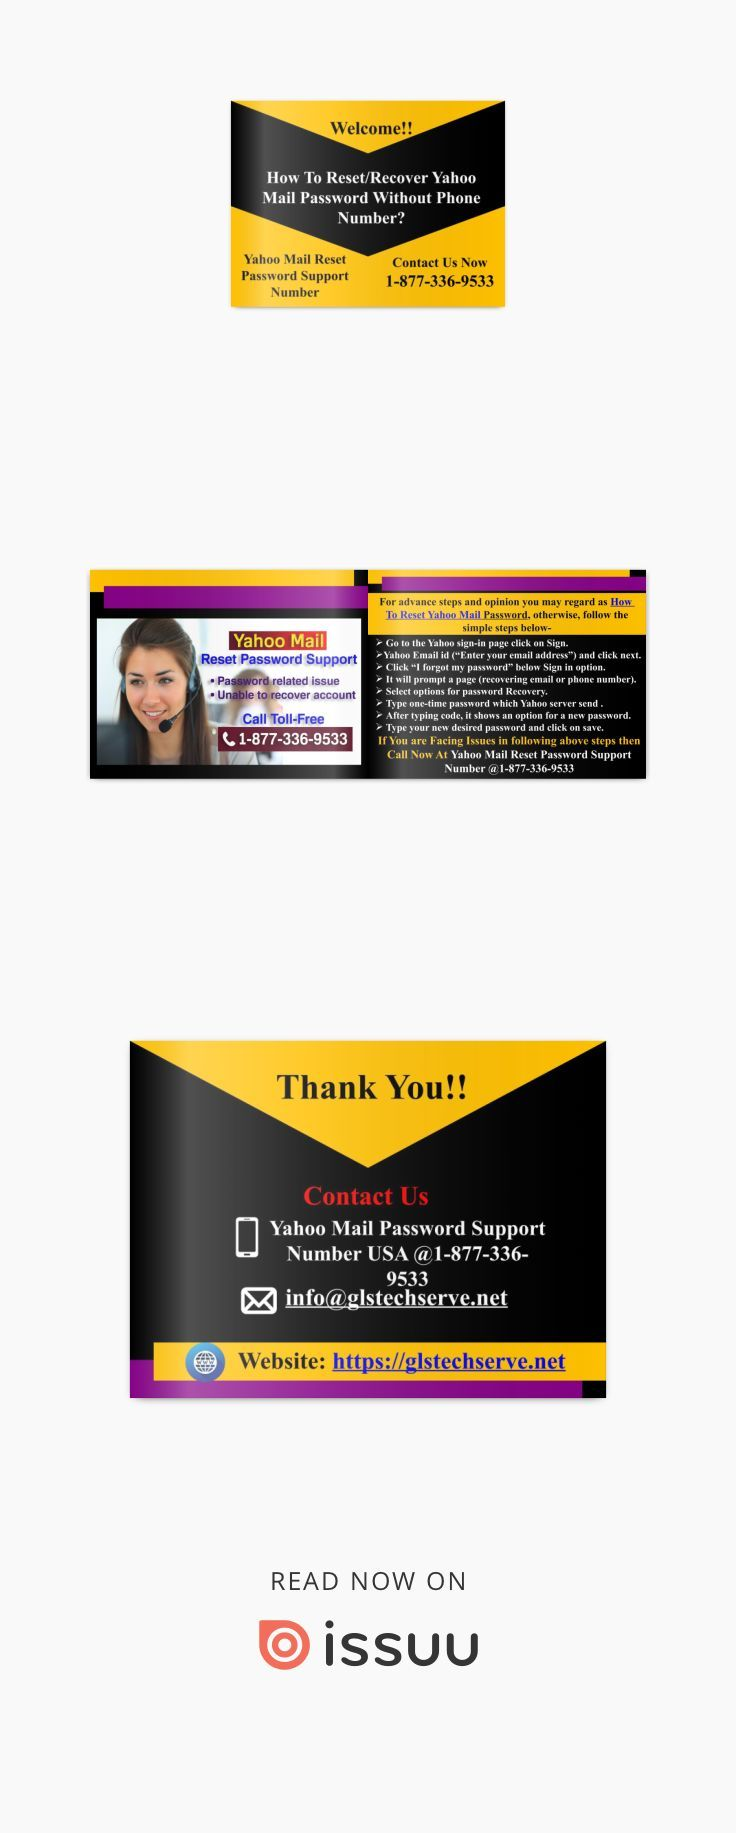 How To Reset Yahoo Mail Password without Phone Number